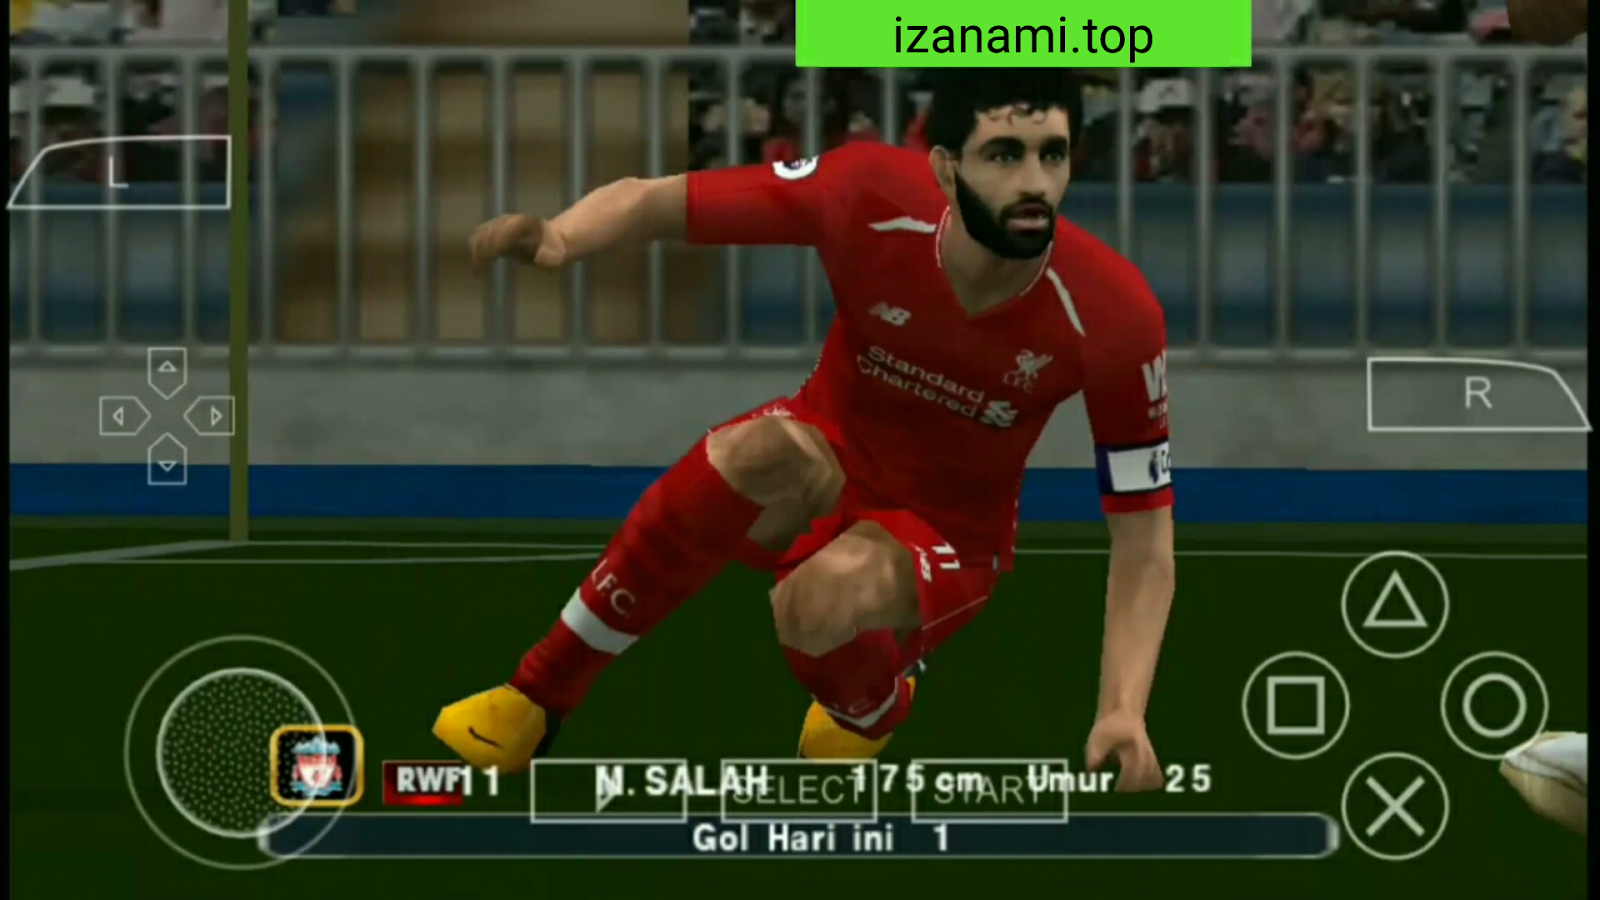 <b>Football</b> League - Play Free Online Games - <b>Snokido</b>